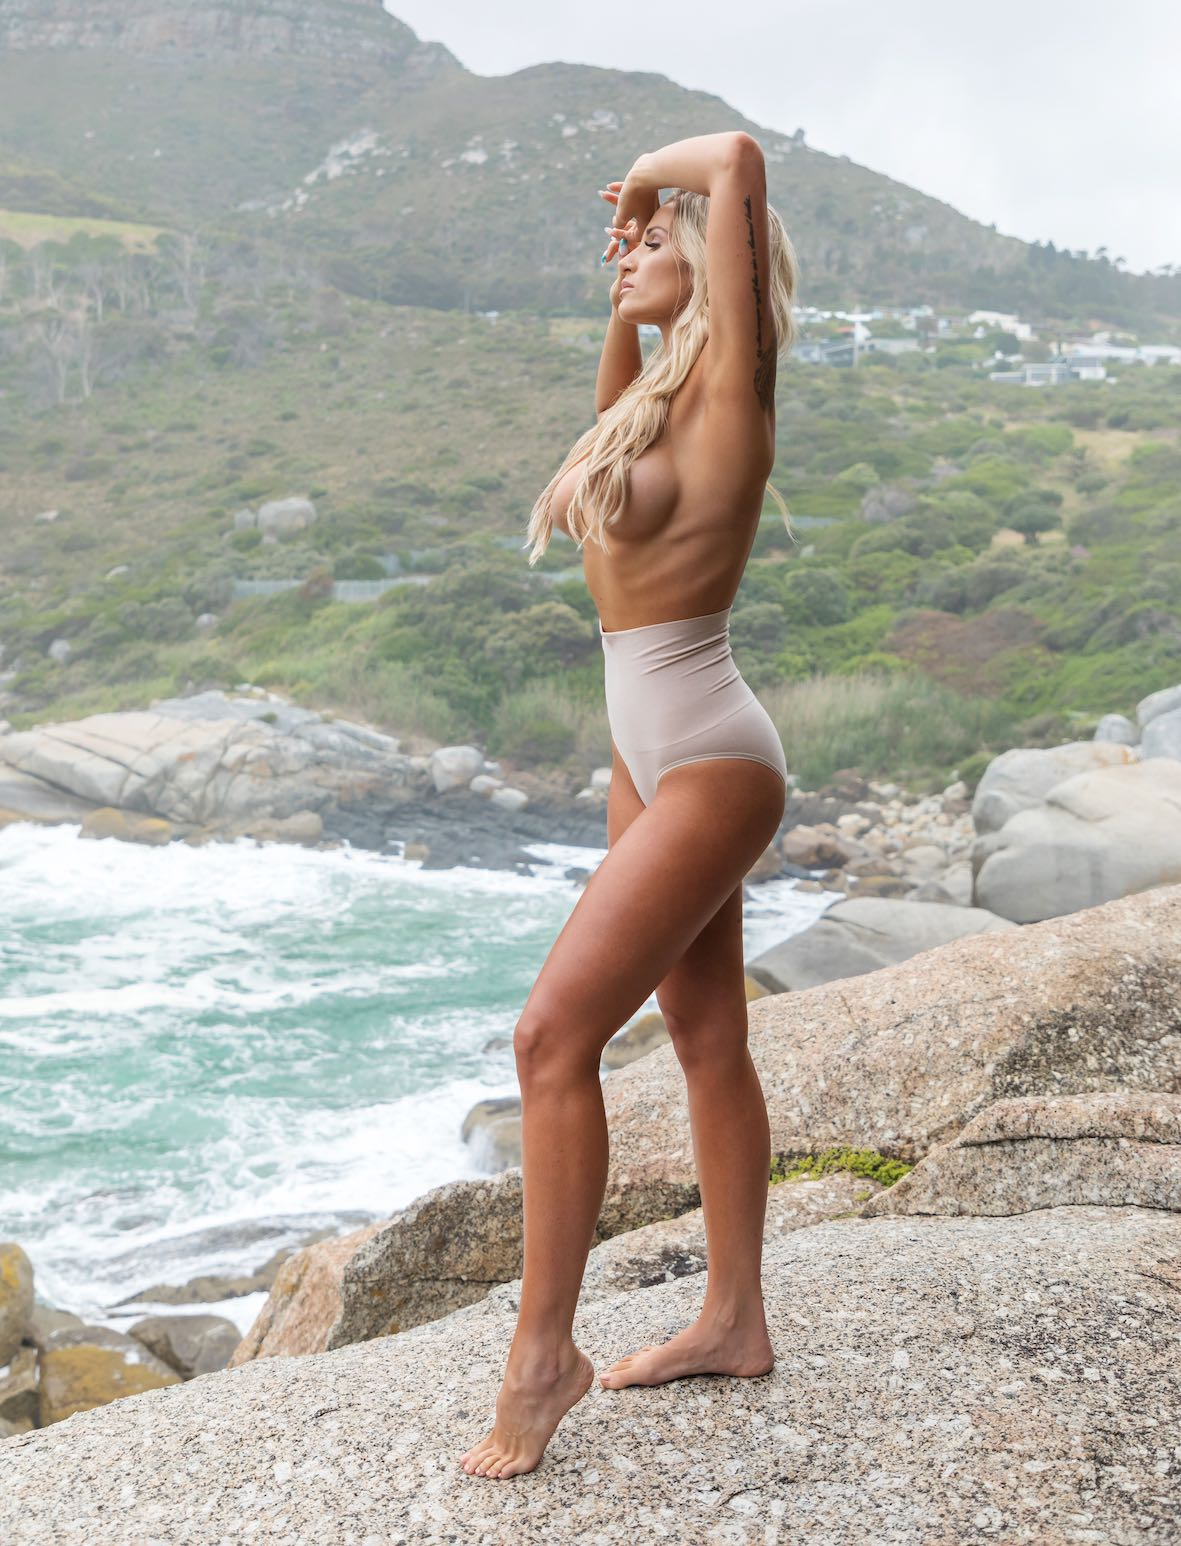 Meet Kayla Baker in our South African Babes feature